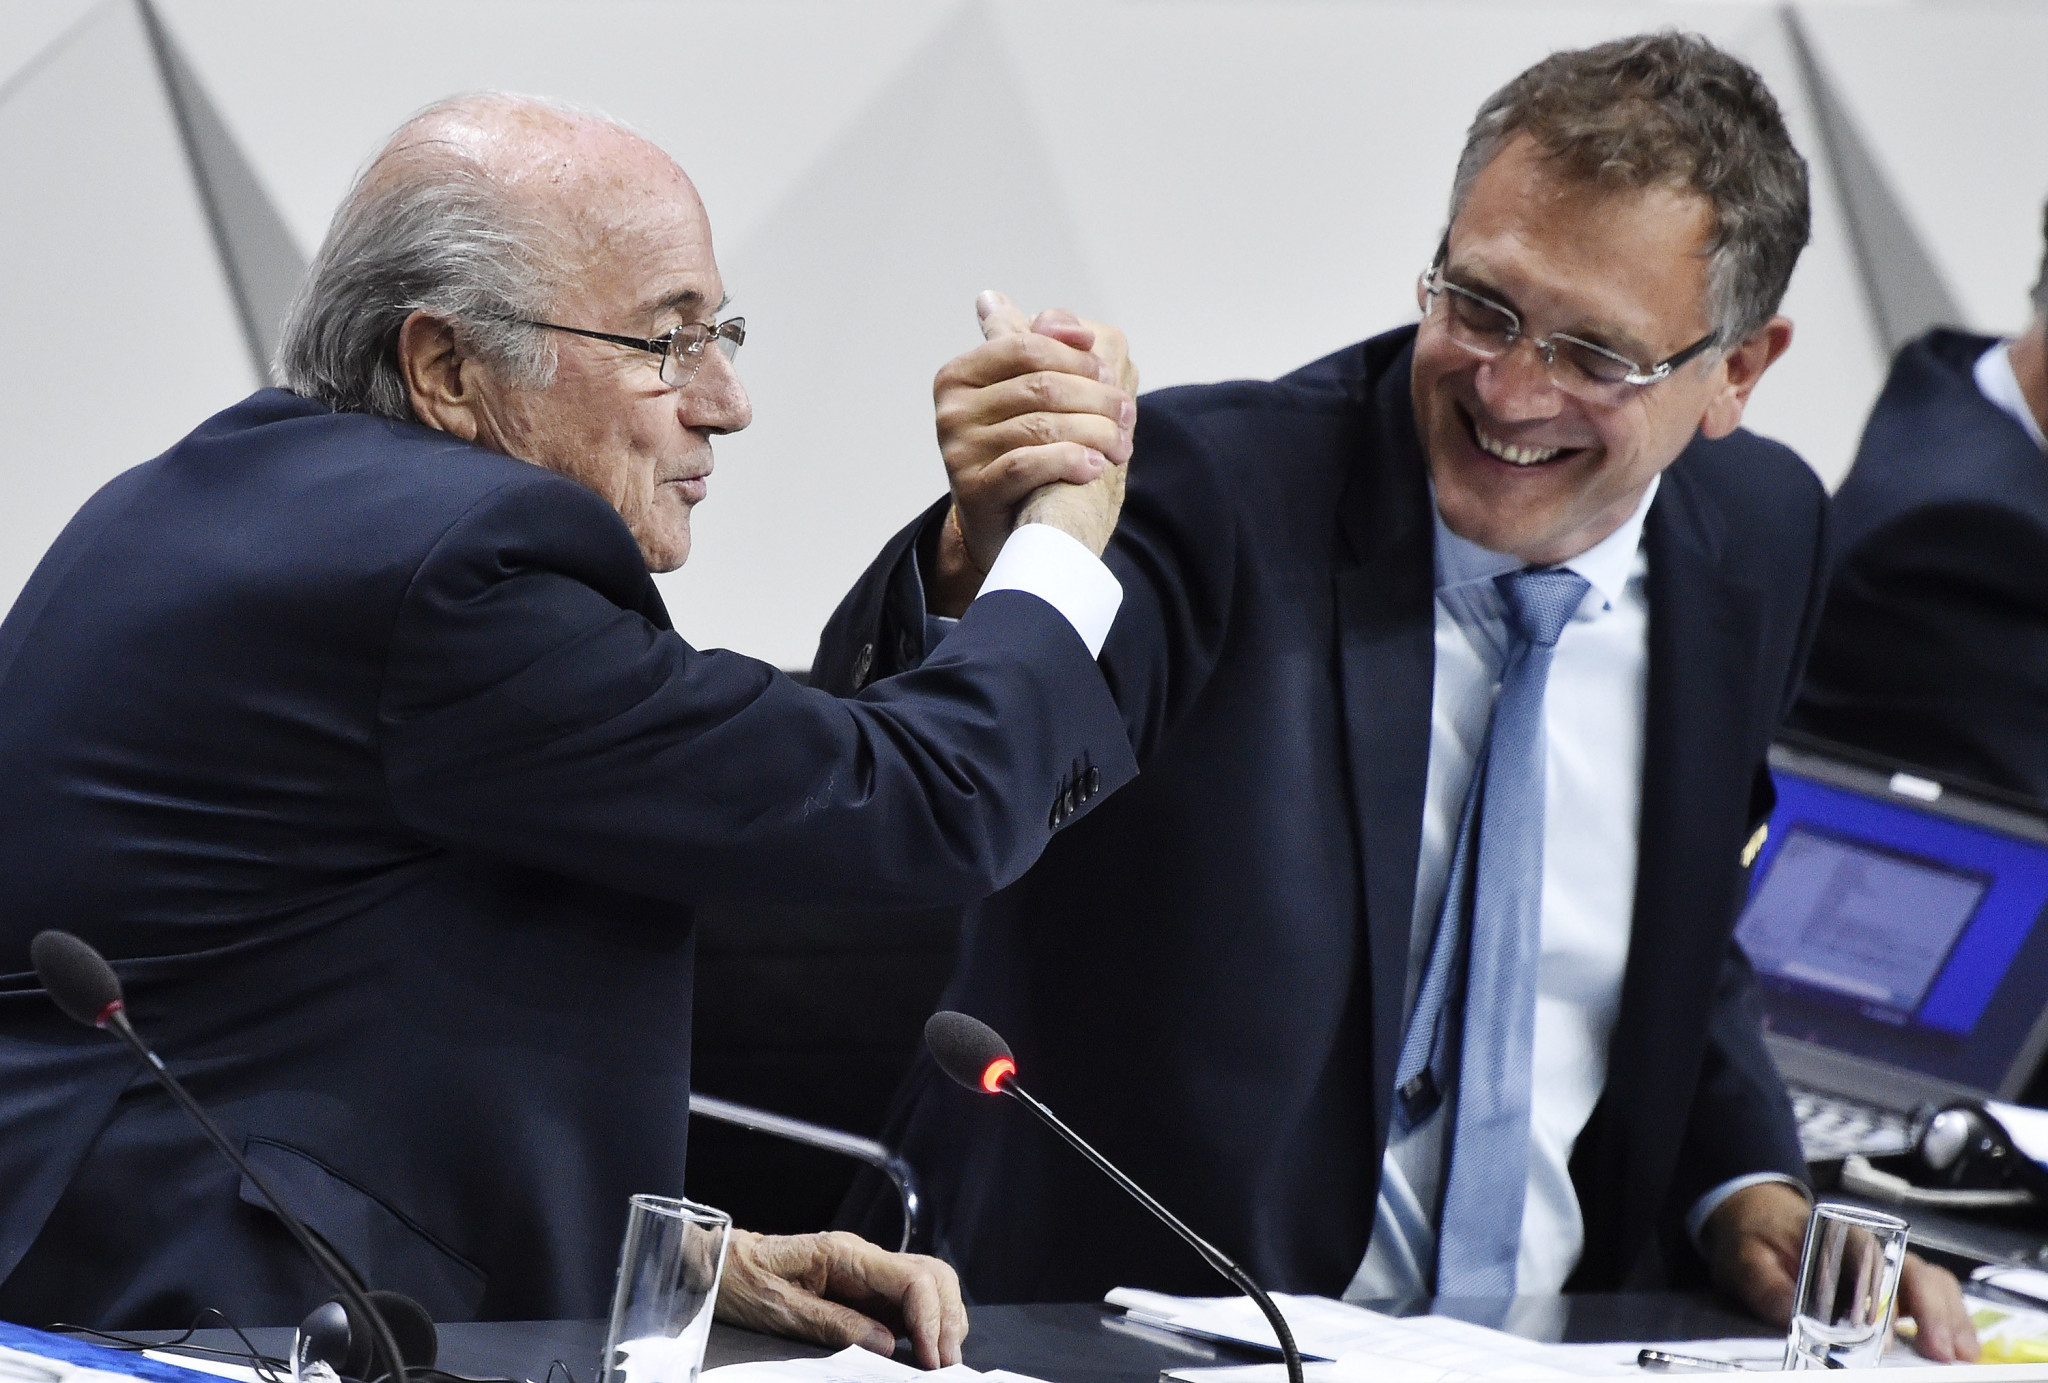 Enjoying the better times that's former FIFA President Sepp Blatter with then general secretary Jerome Valcke back in 2015 ©Getty Images